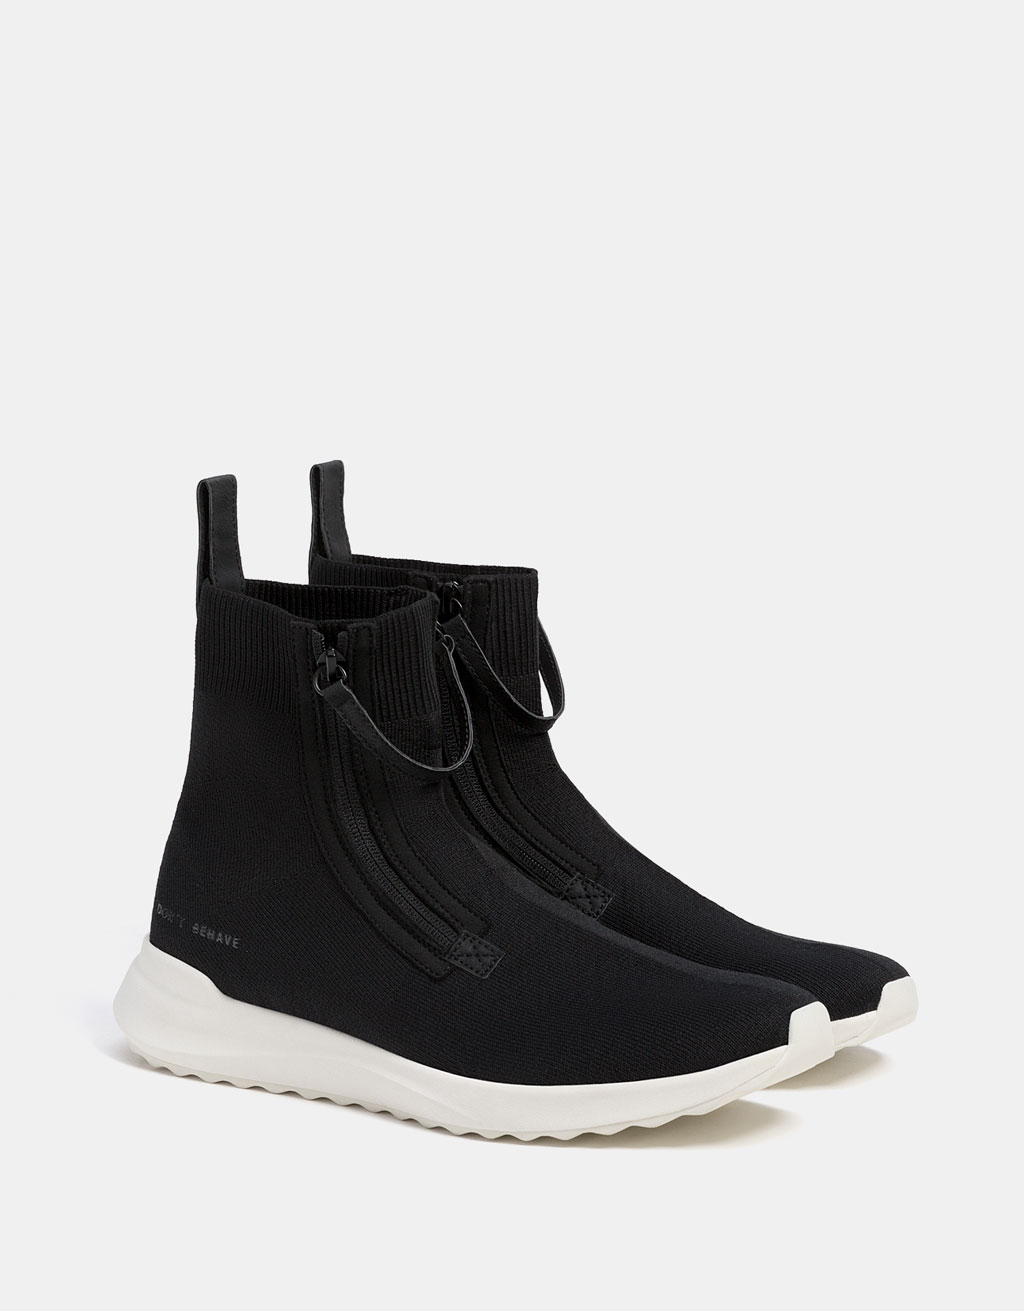 Men's high-top sock-style sneakers with zips